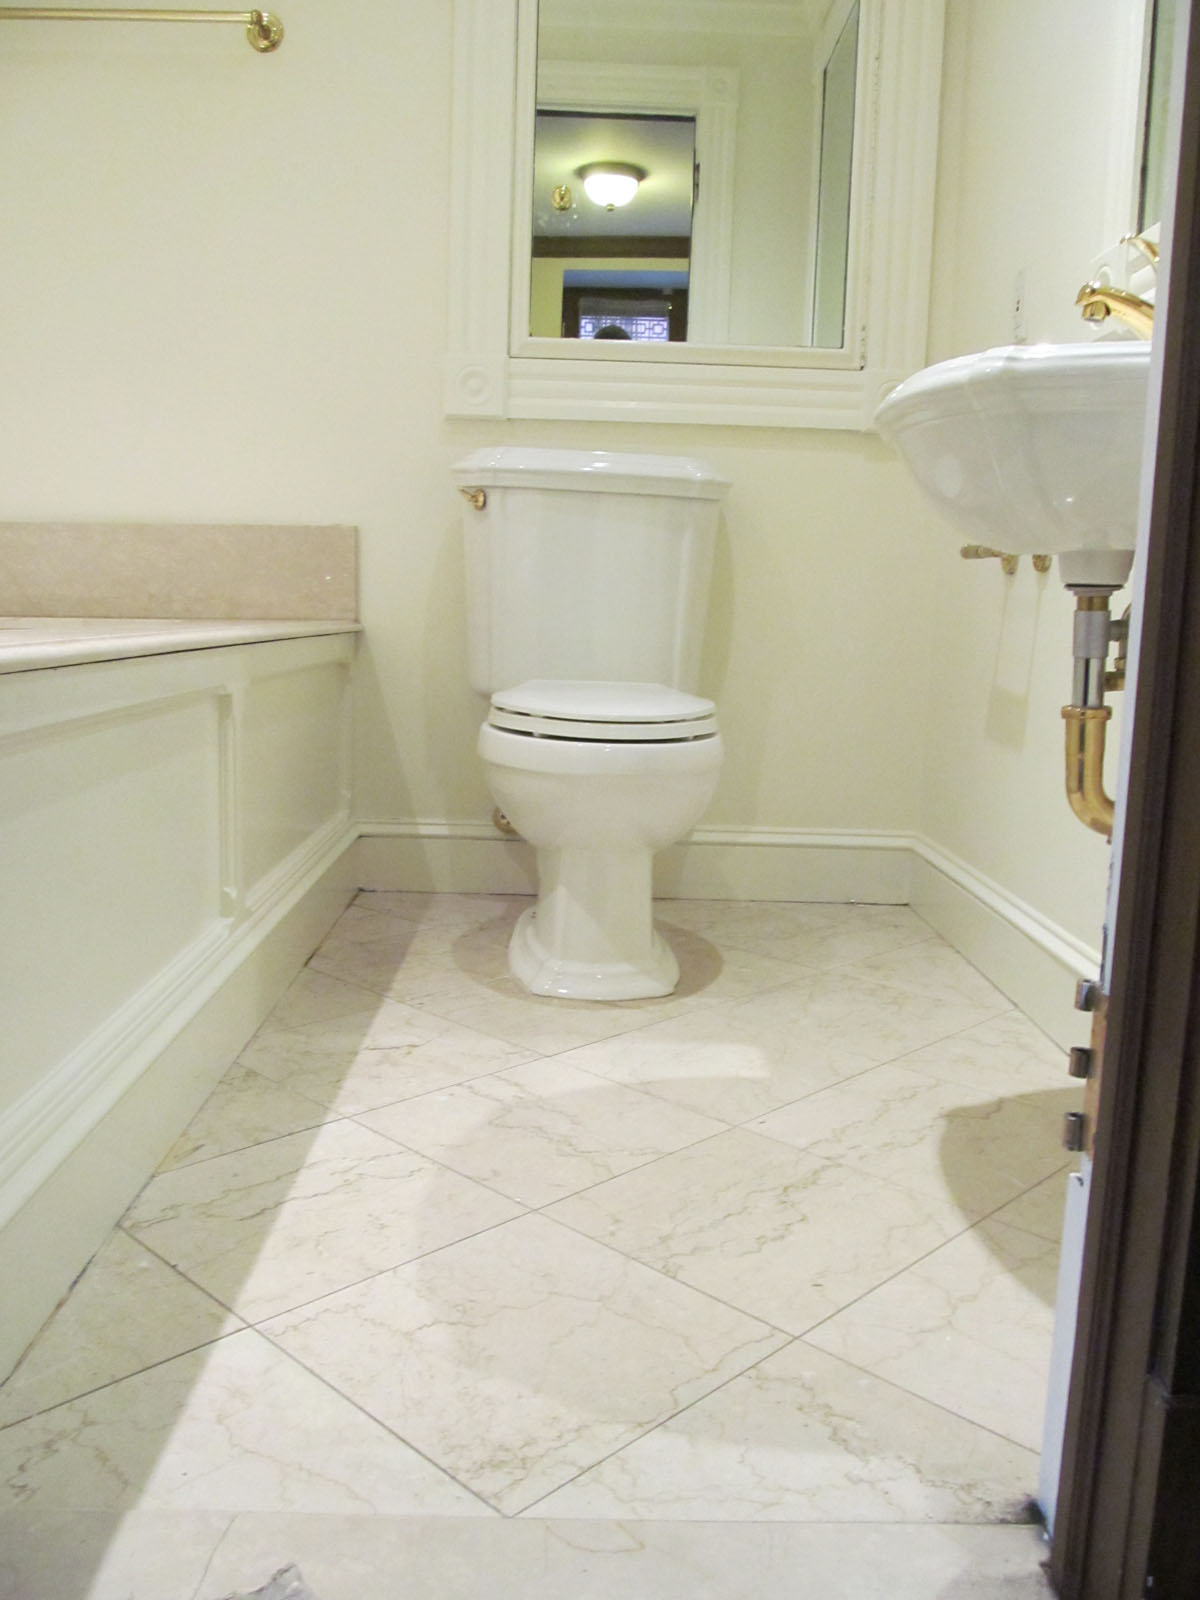 Beacon St. Boston before remodel showing tub surround, sink, tile